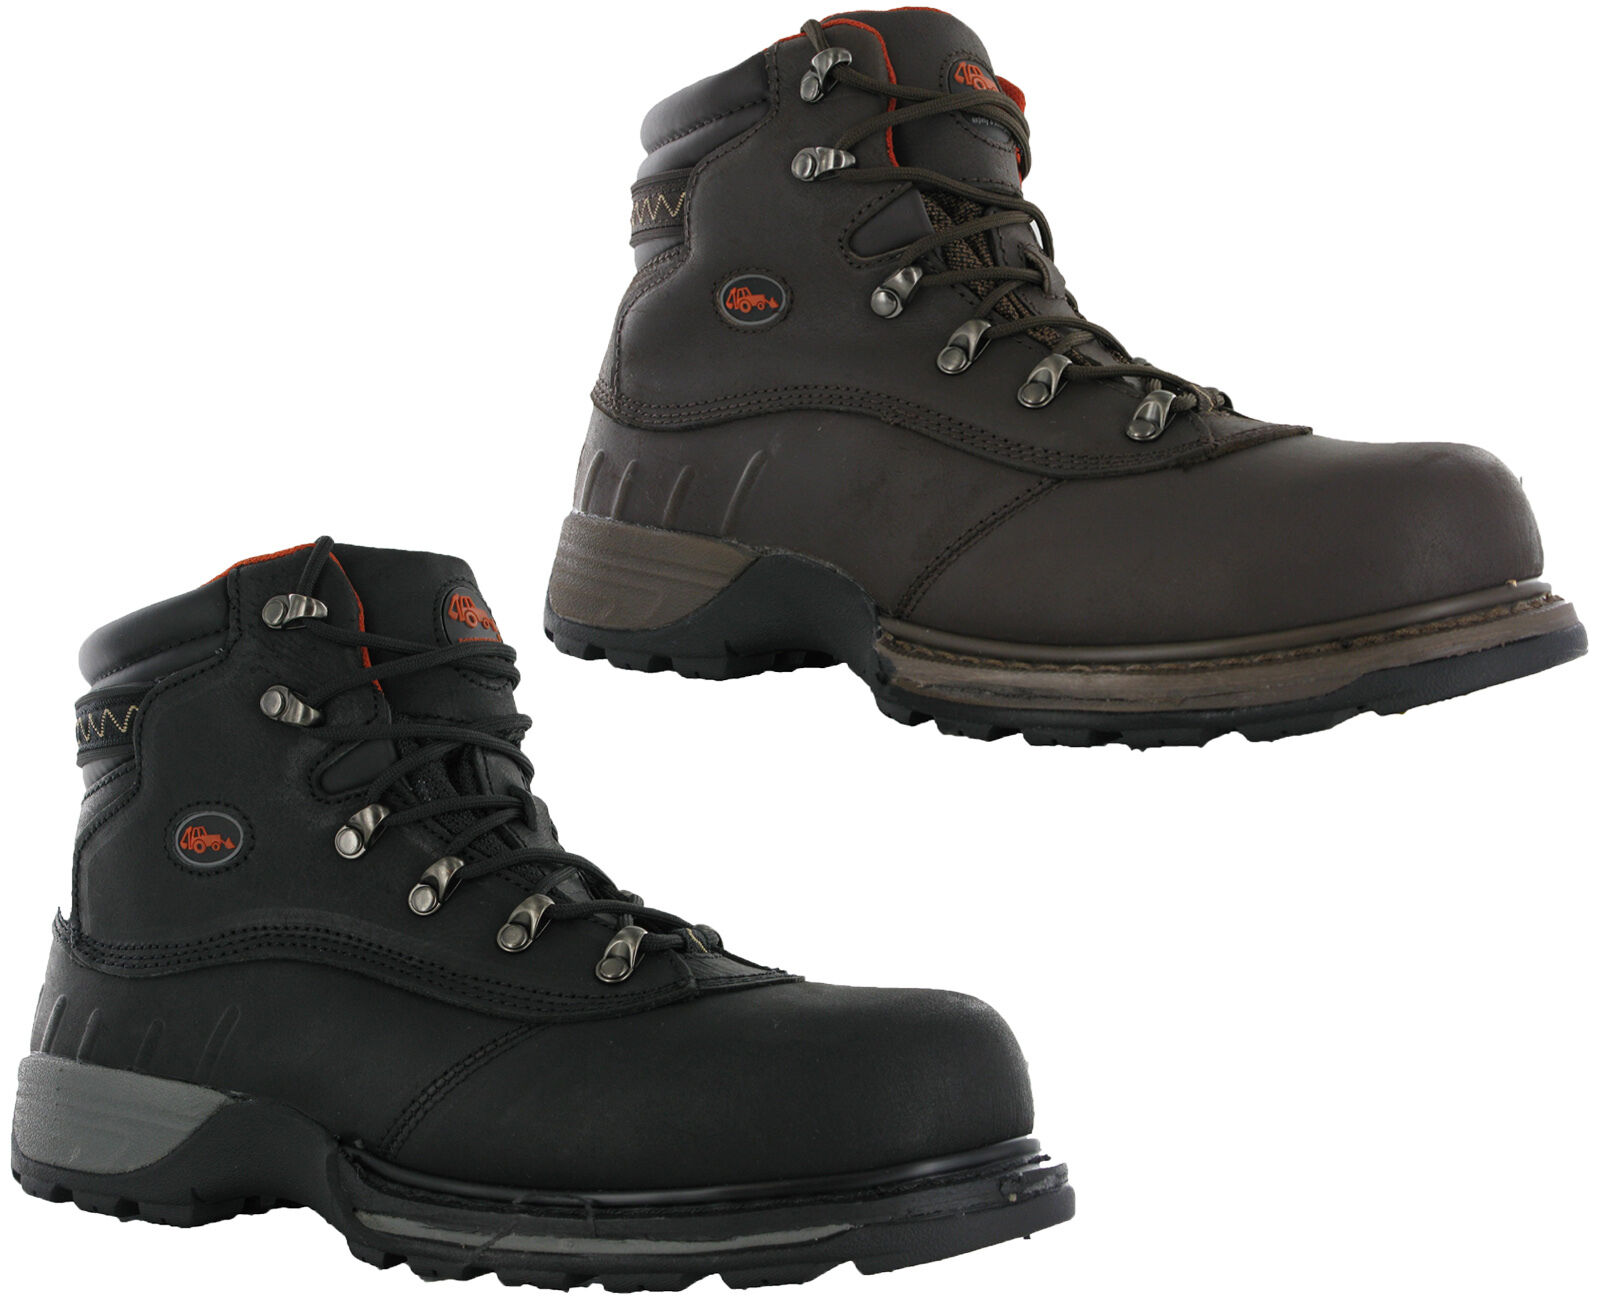 WORKFORCE HYDRY WF sicurezza in pelle HYDRY WORKFORCE IMPERMEABILE in acciaio Puntale Work Boots da uomo e2d3ca